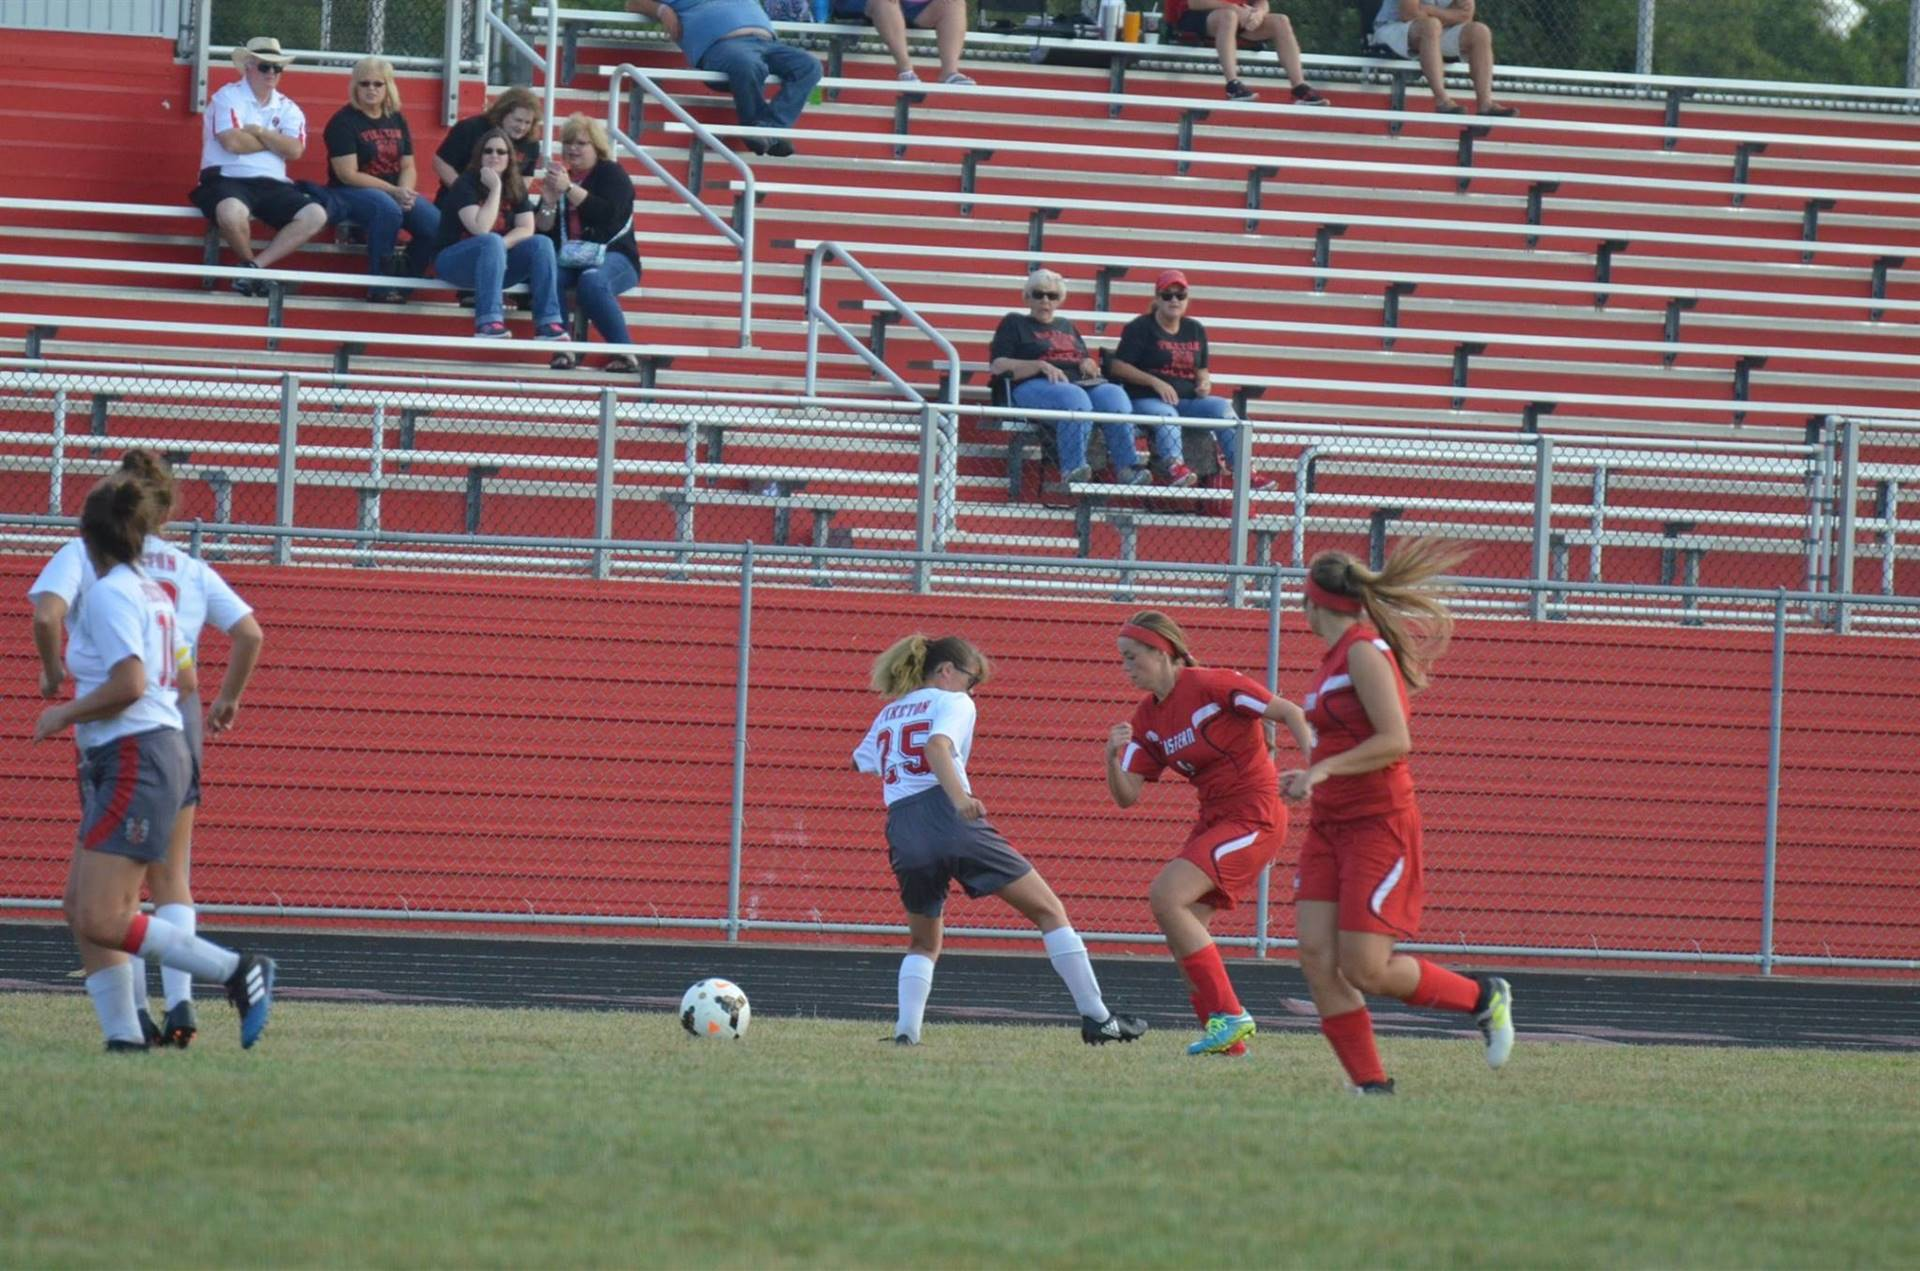 Emma D'Amico going for the ball.